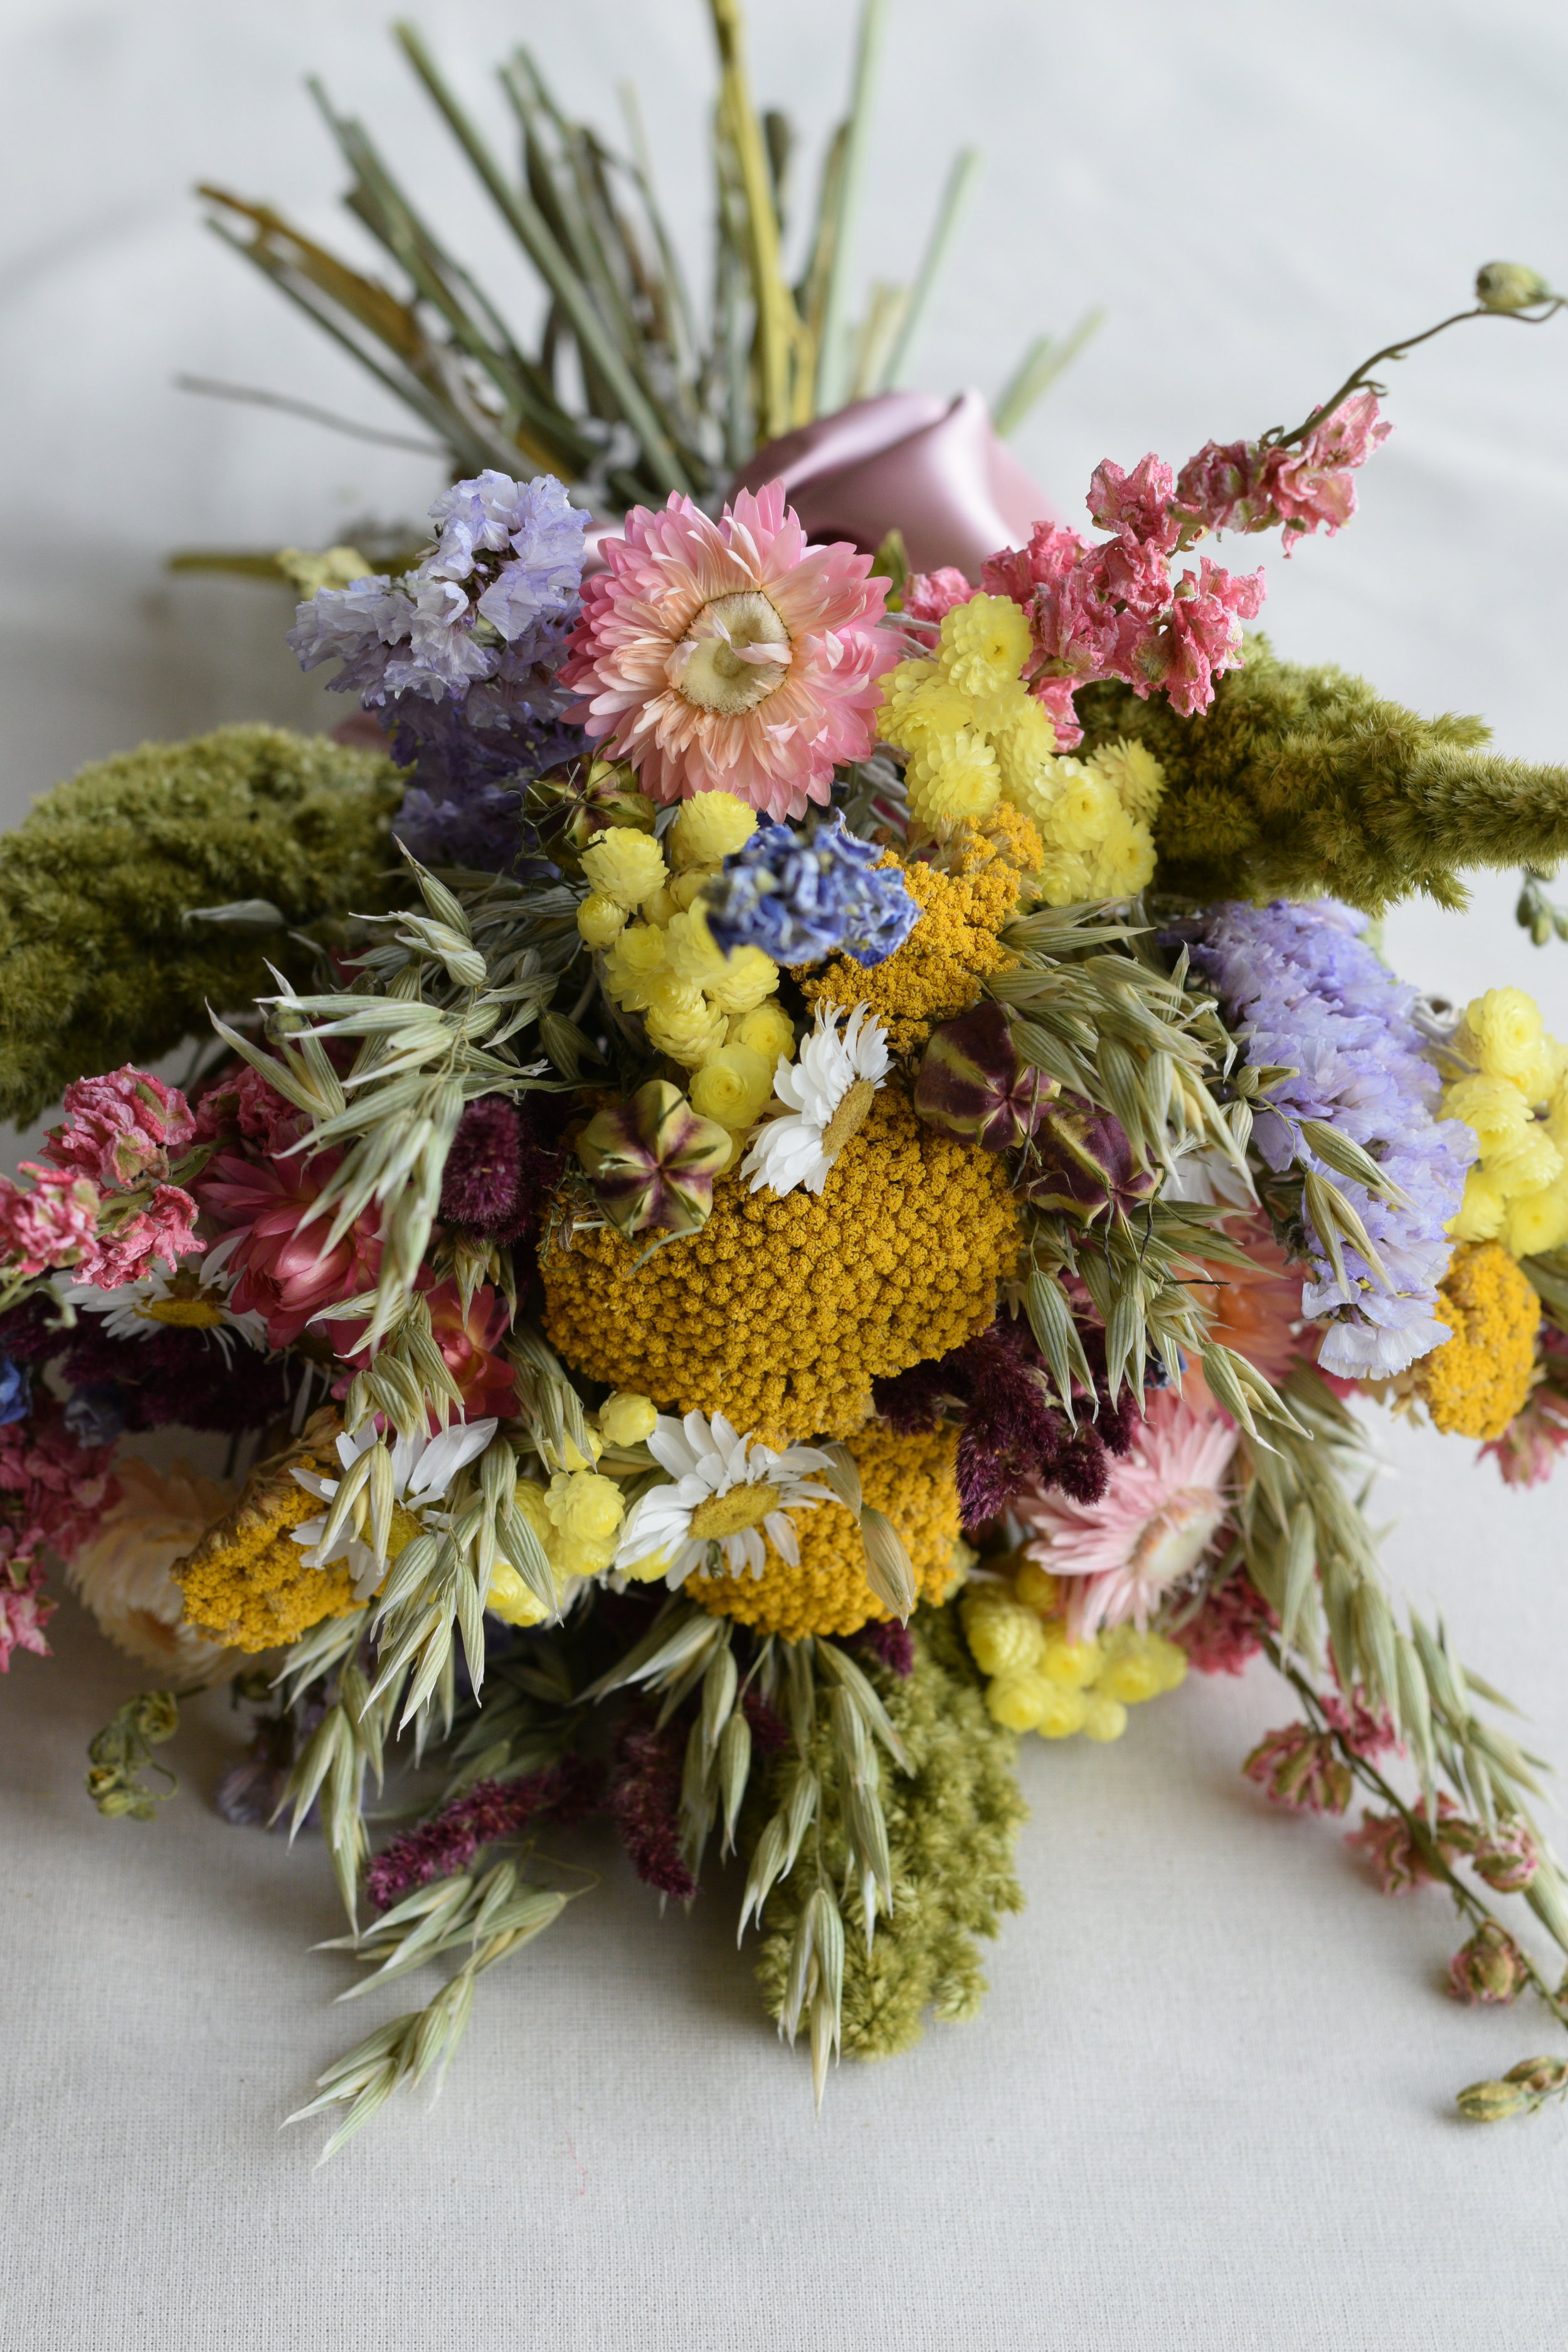 Bouquets - A collection of wild and wonderful Bouquets for Brides and Bridesmaids.